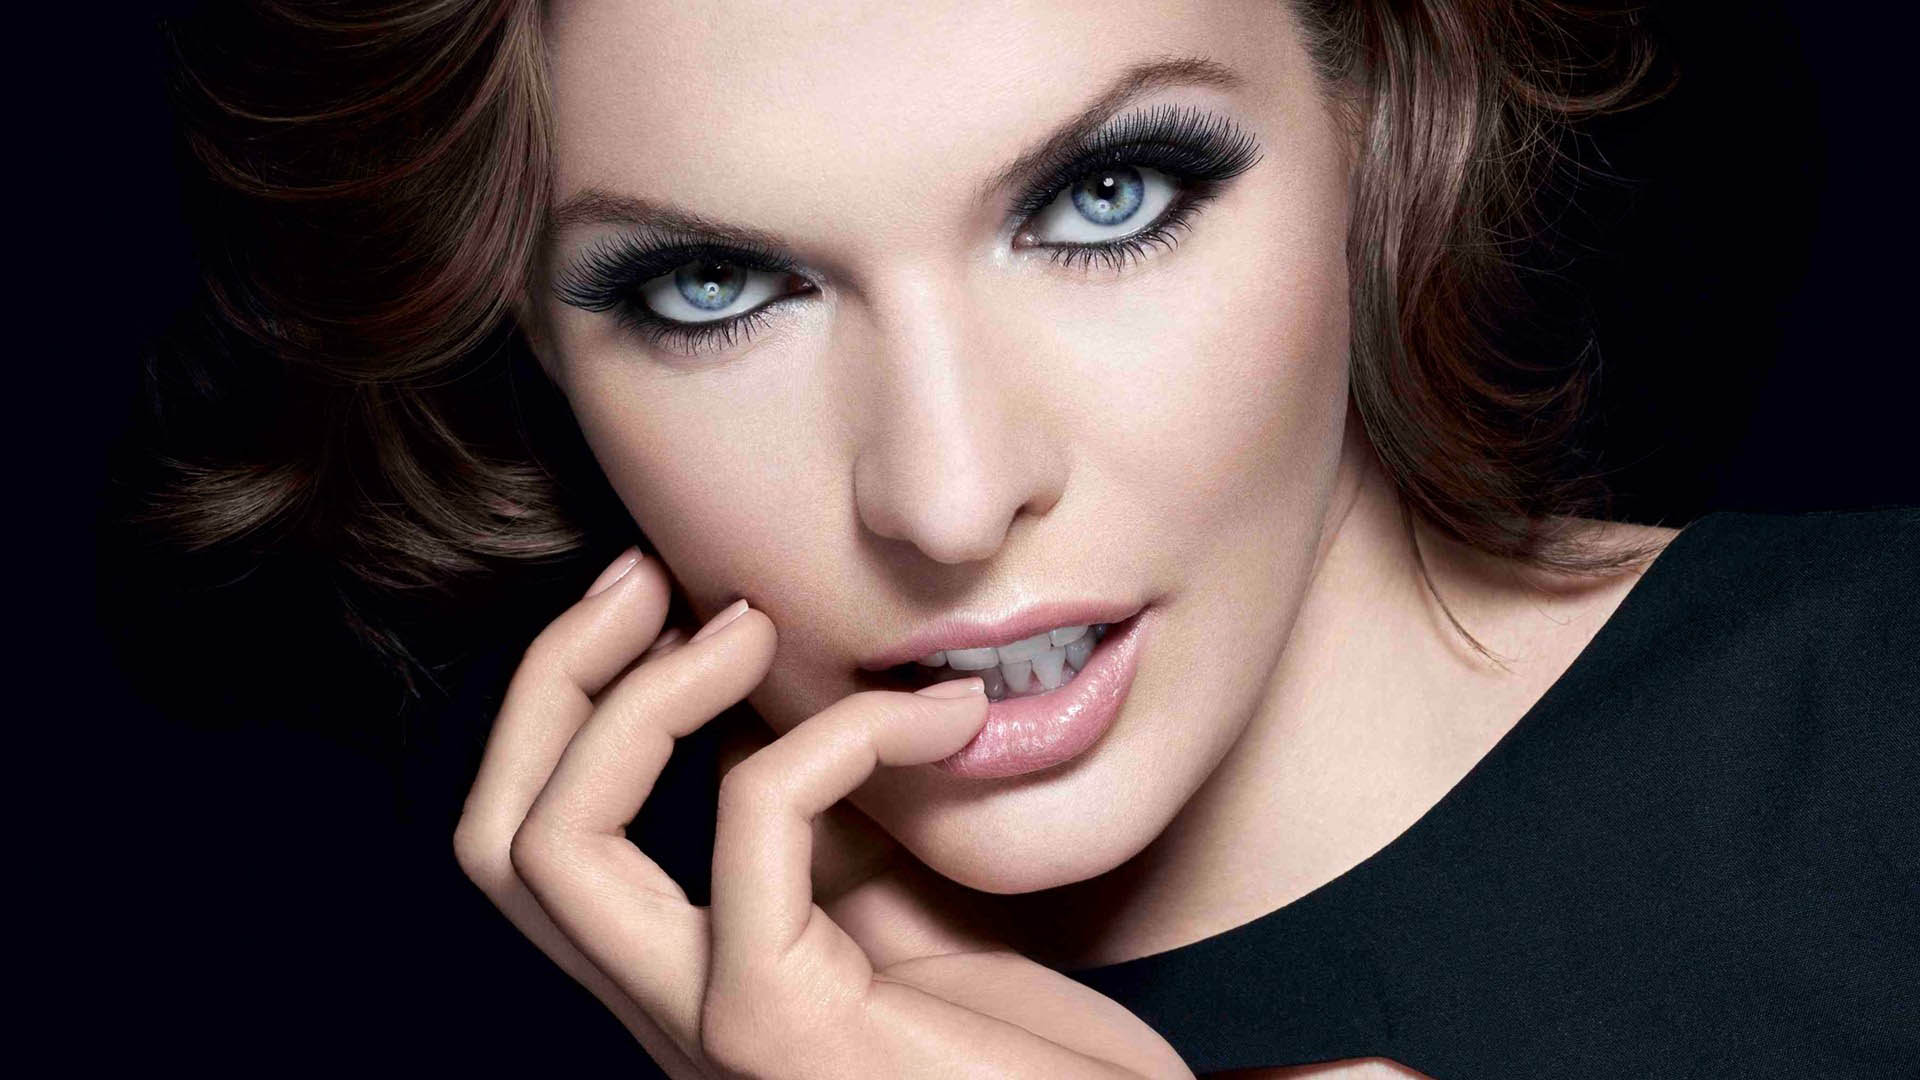 Milla Jovovich Wallpapers - Wallpaper Cave Milla Jovovich